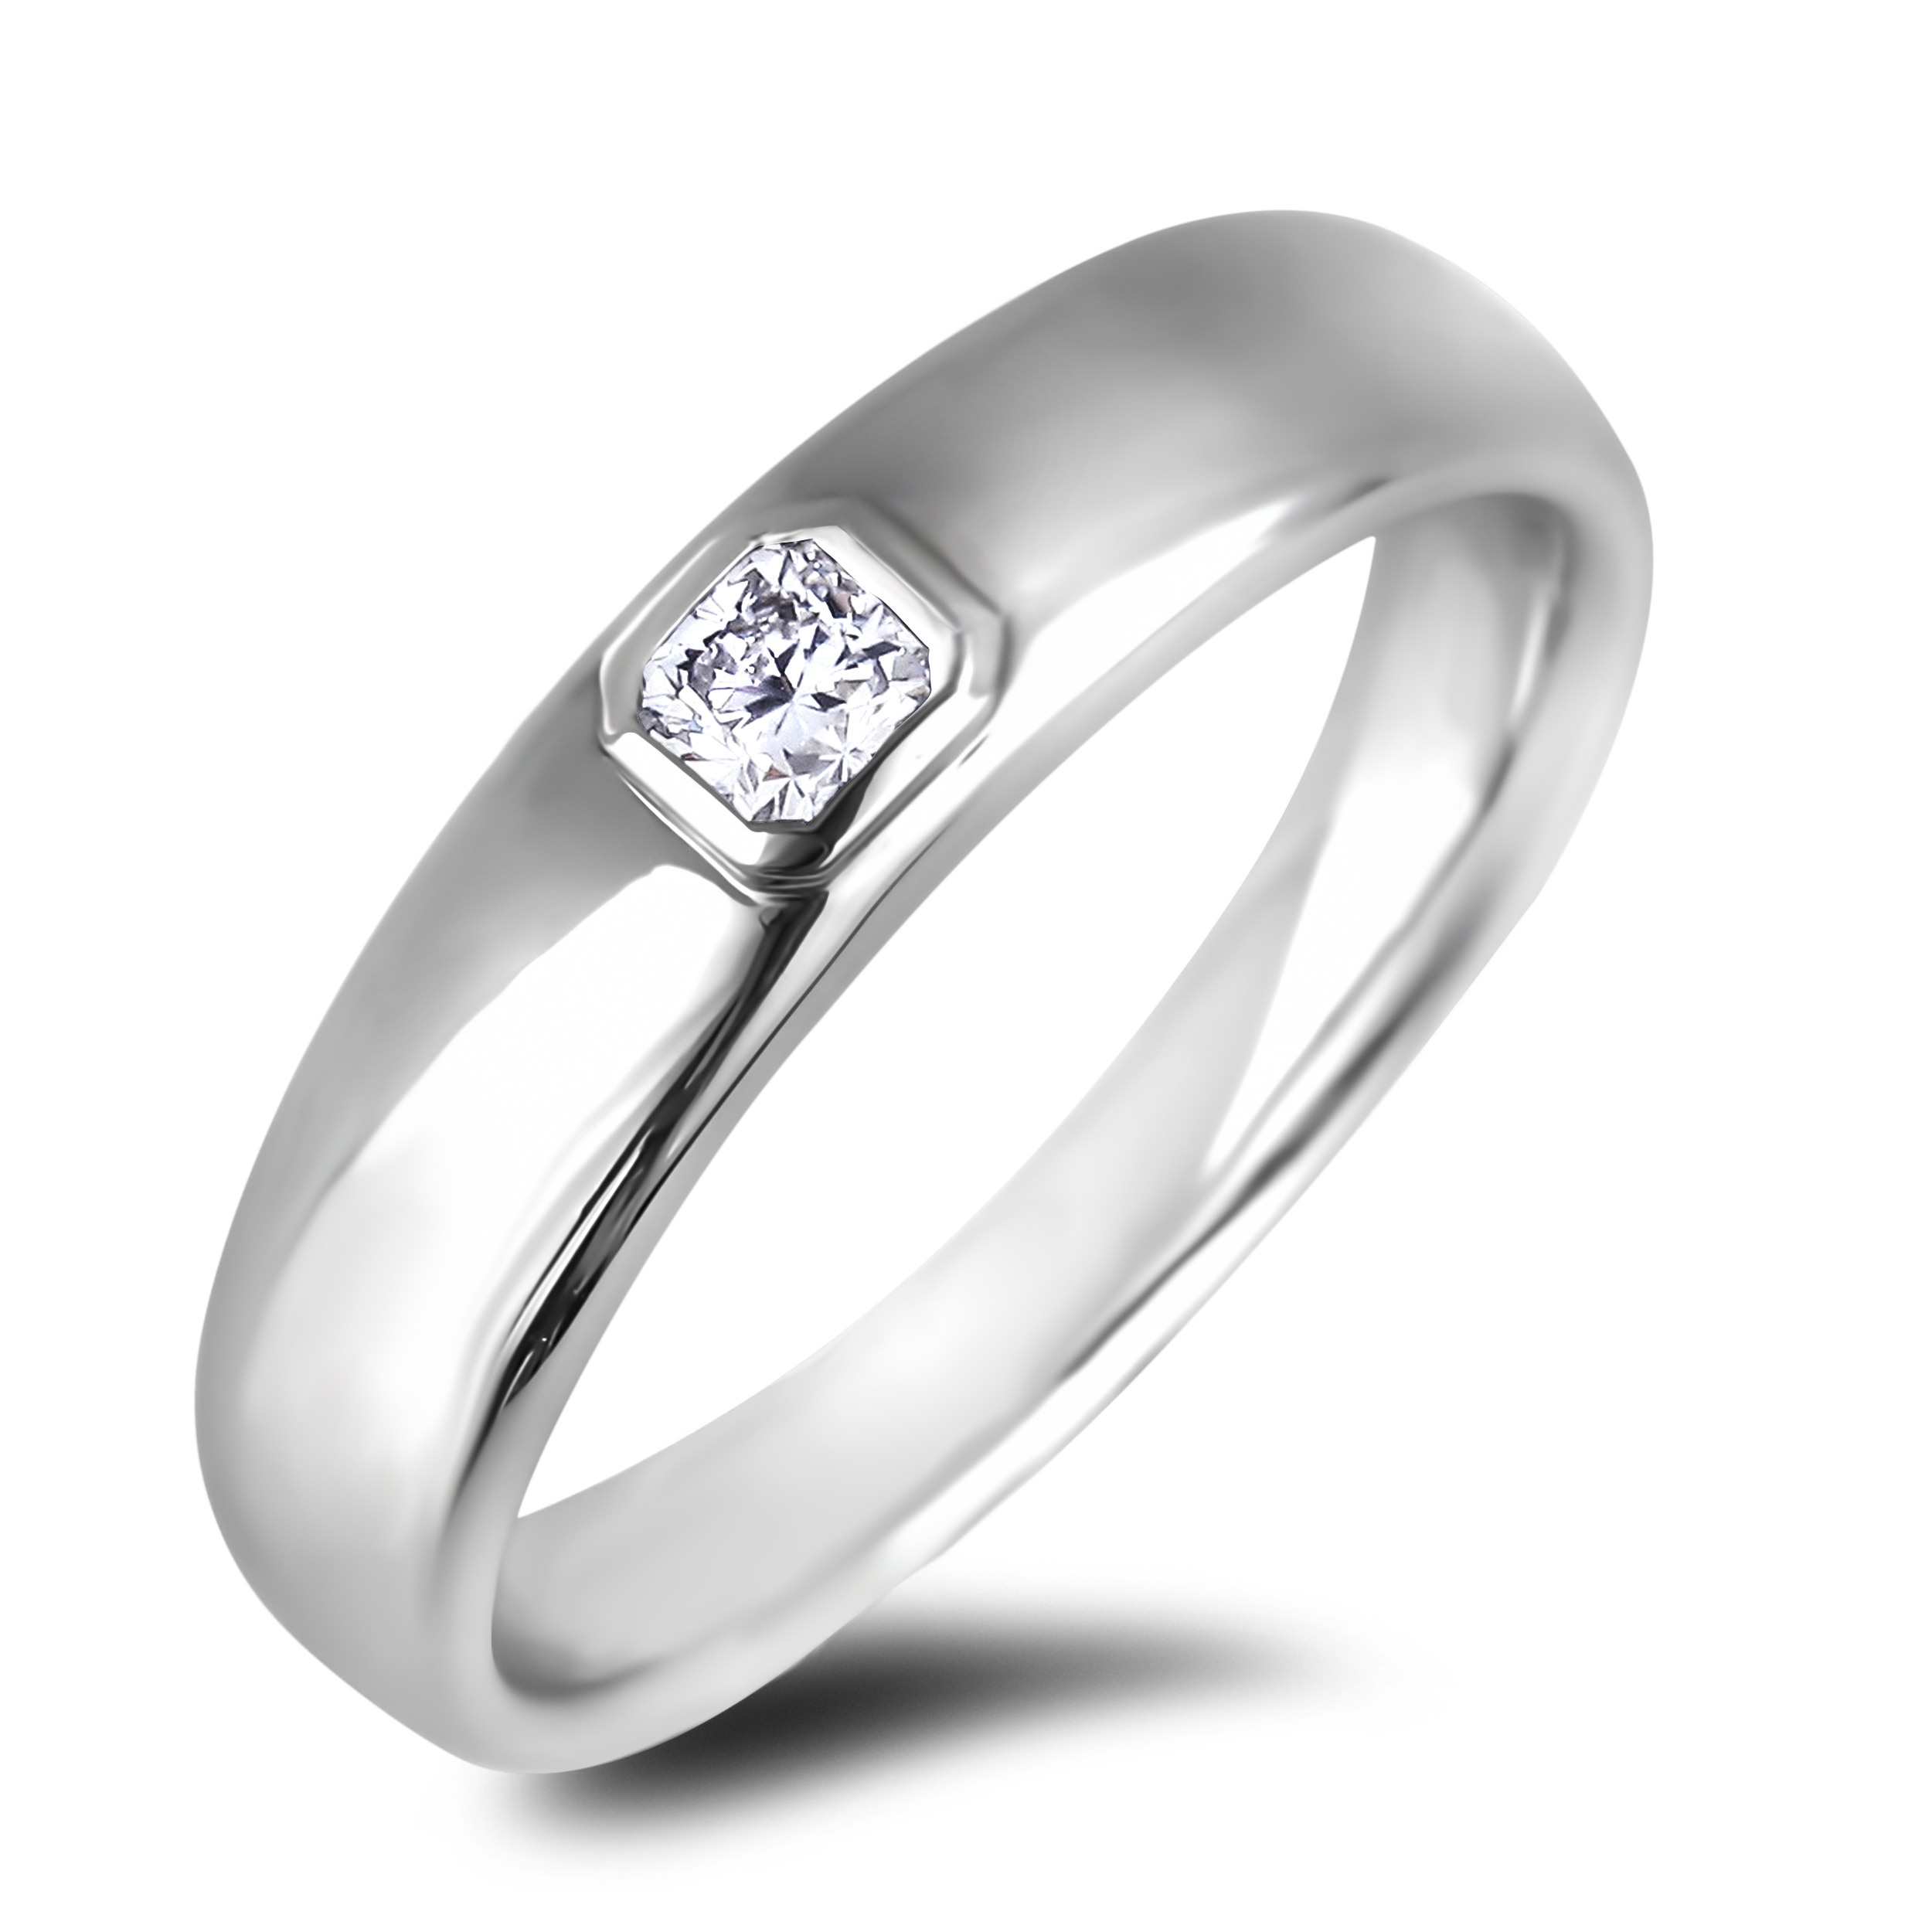 Diamond Anniversary Rings SGR1116-6 (Rings)